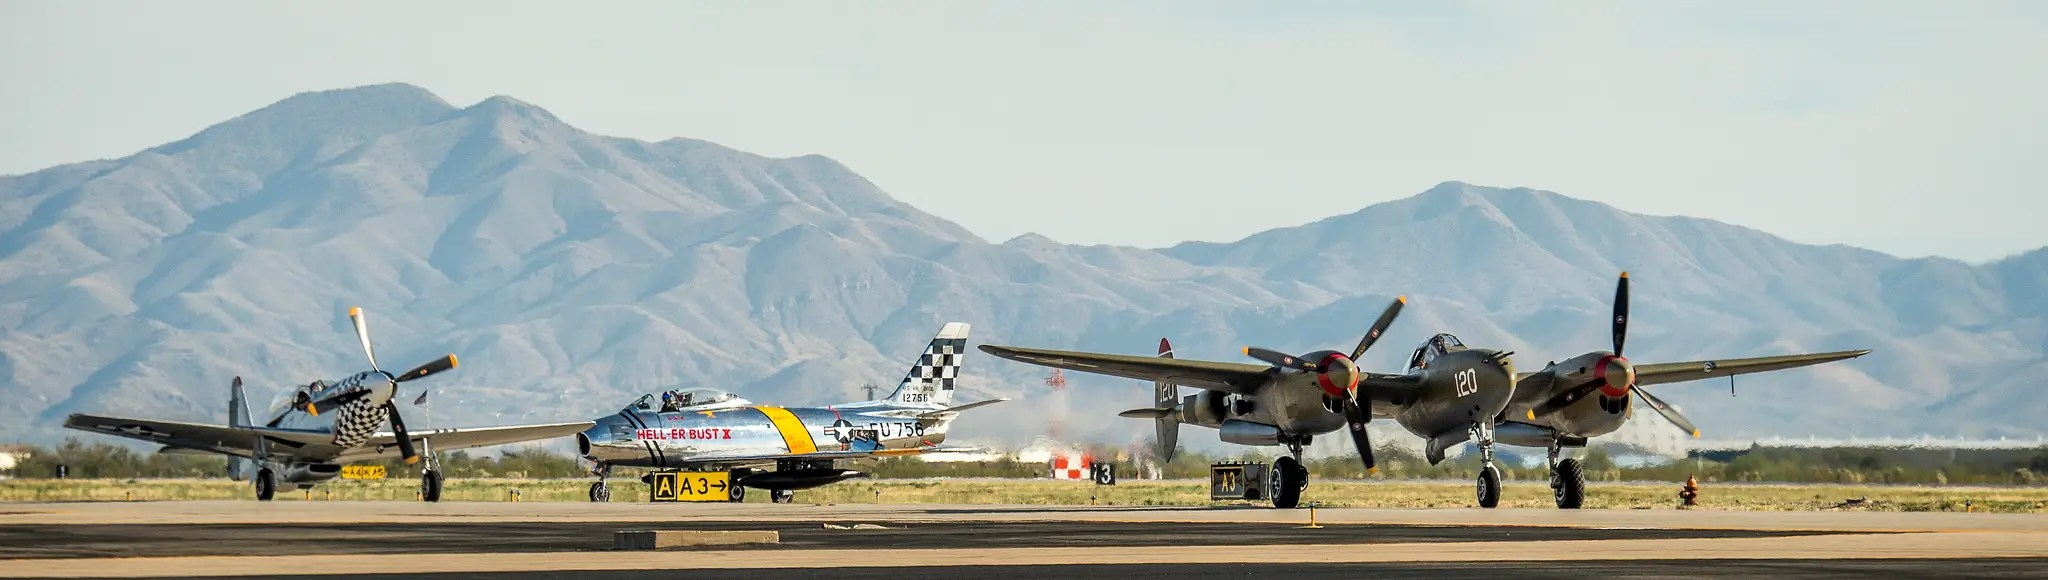 Here the P-51, the F-86, and the P-38 are, looking great for old timers.